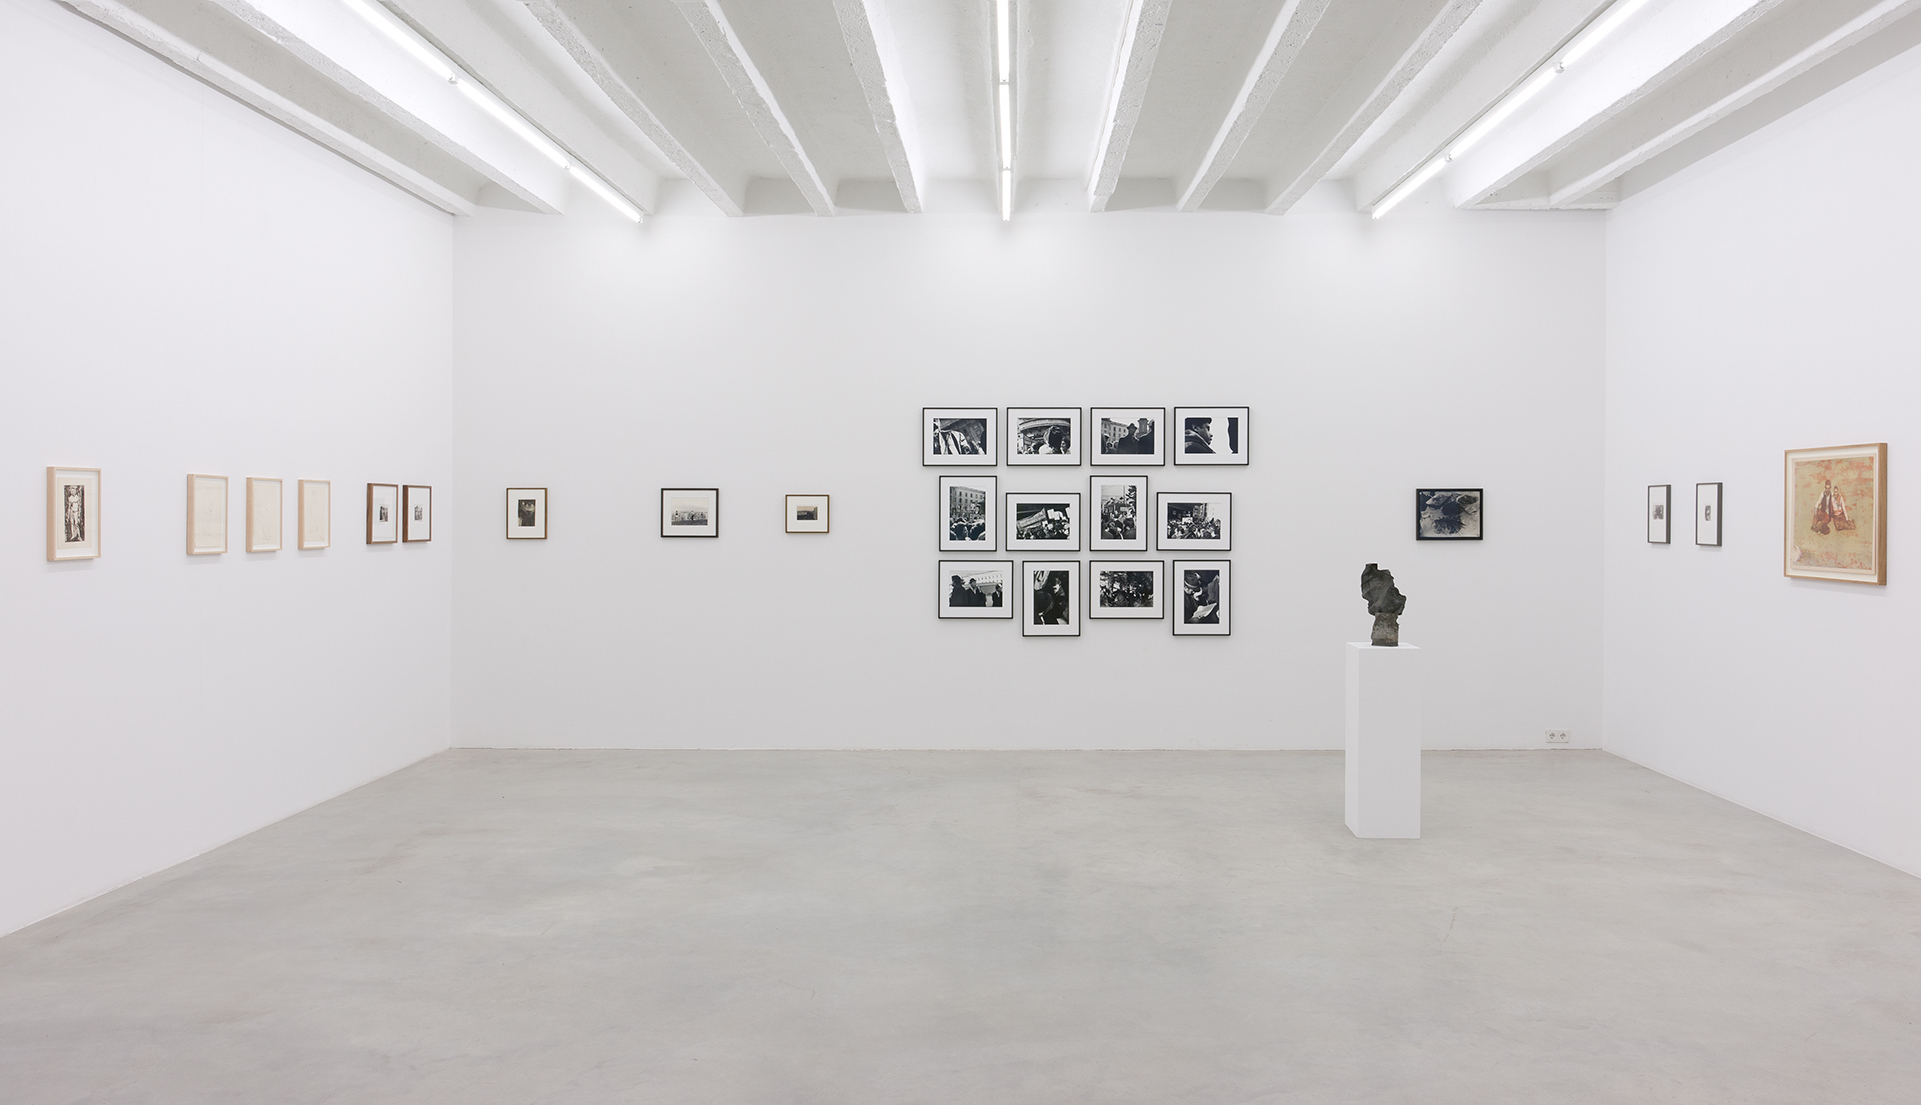 Exhibition view at Galerija Gregor Podnar, Berlin, 2012. Photos: Marcus Schneider